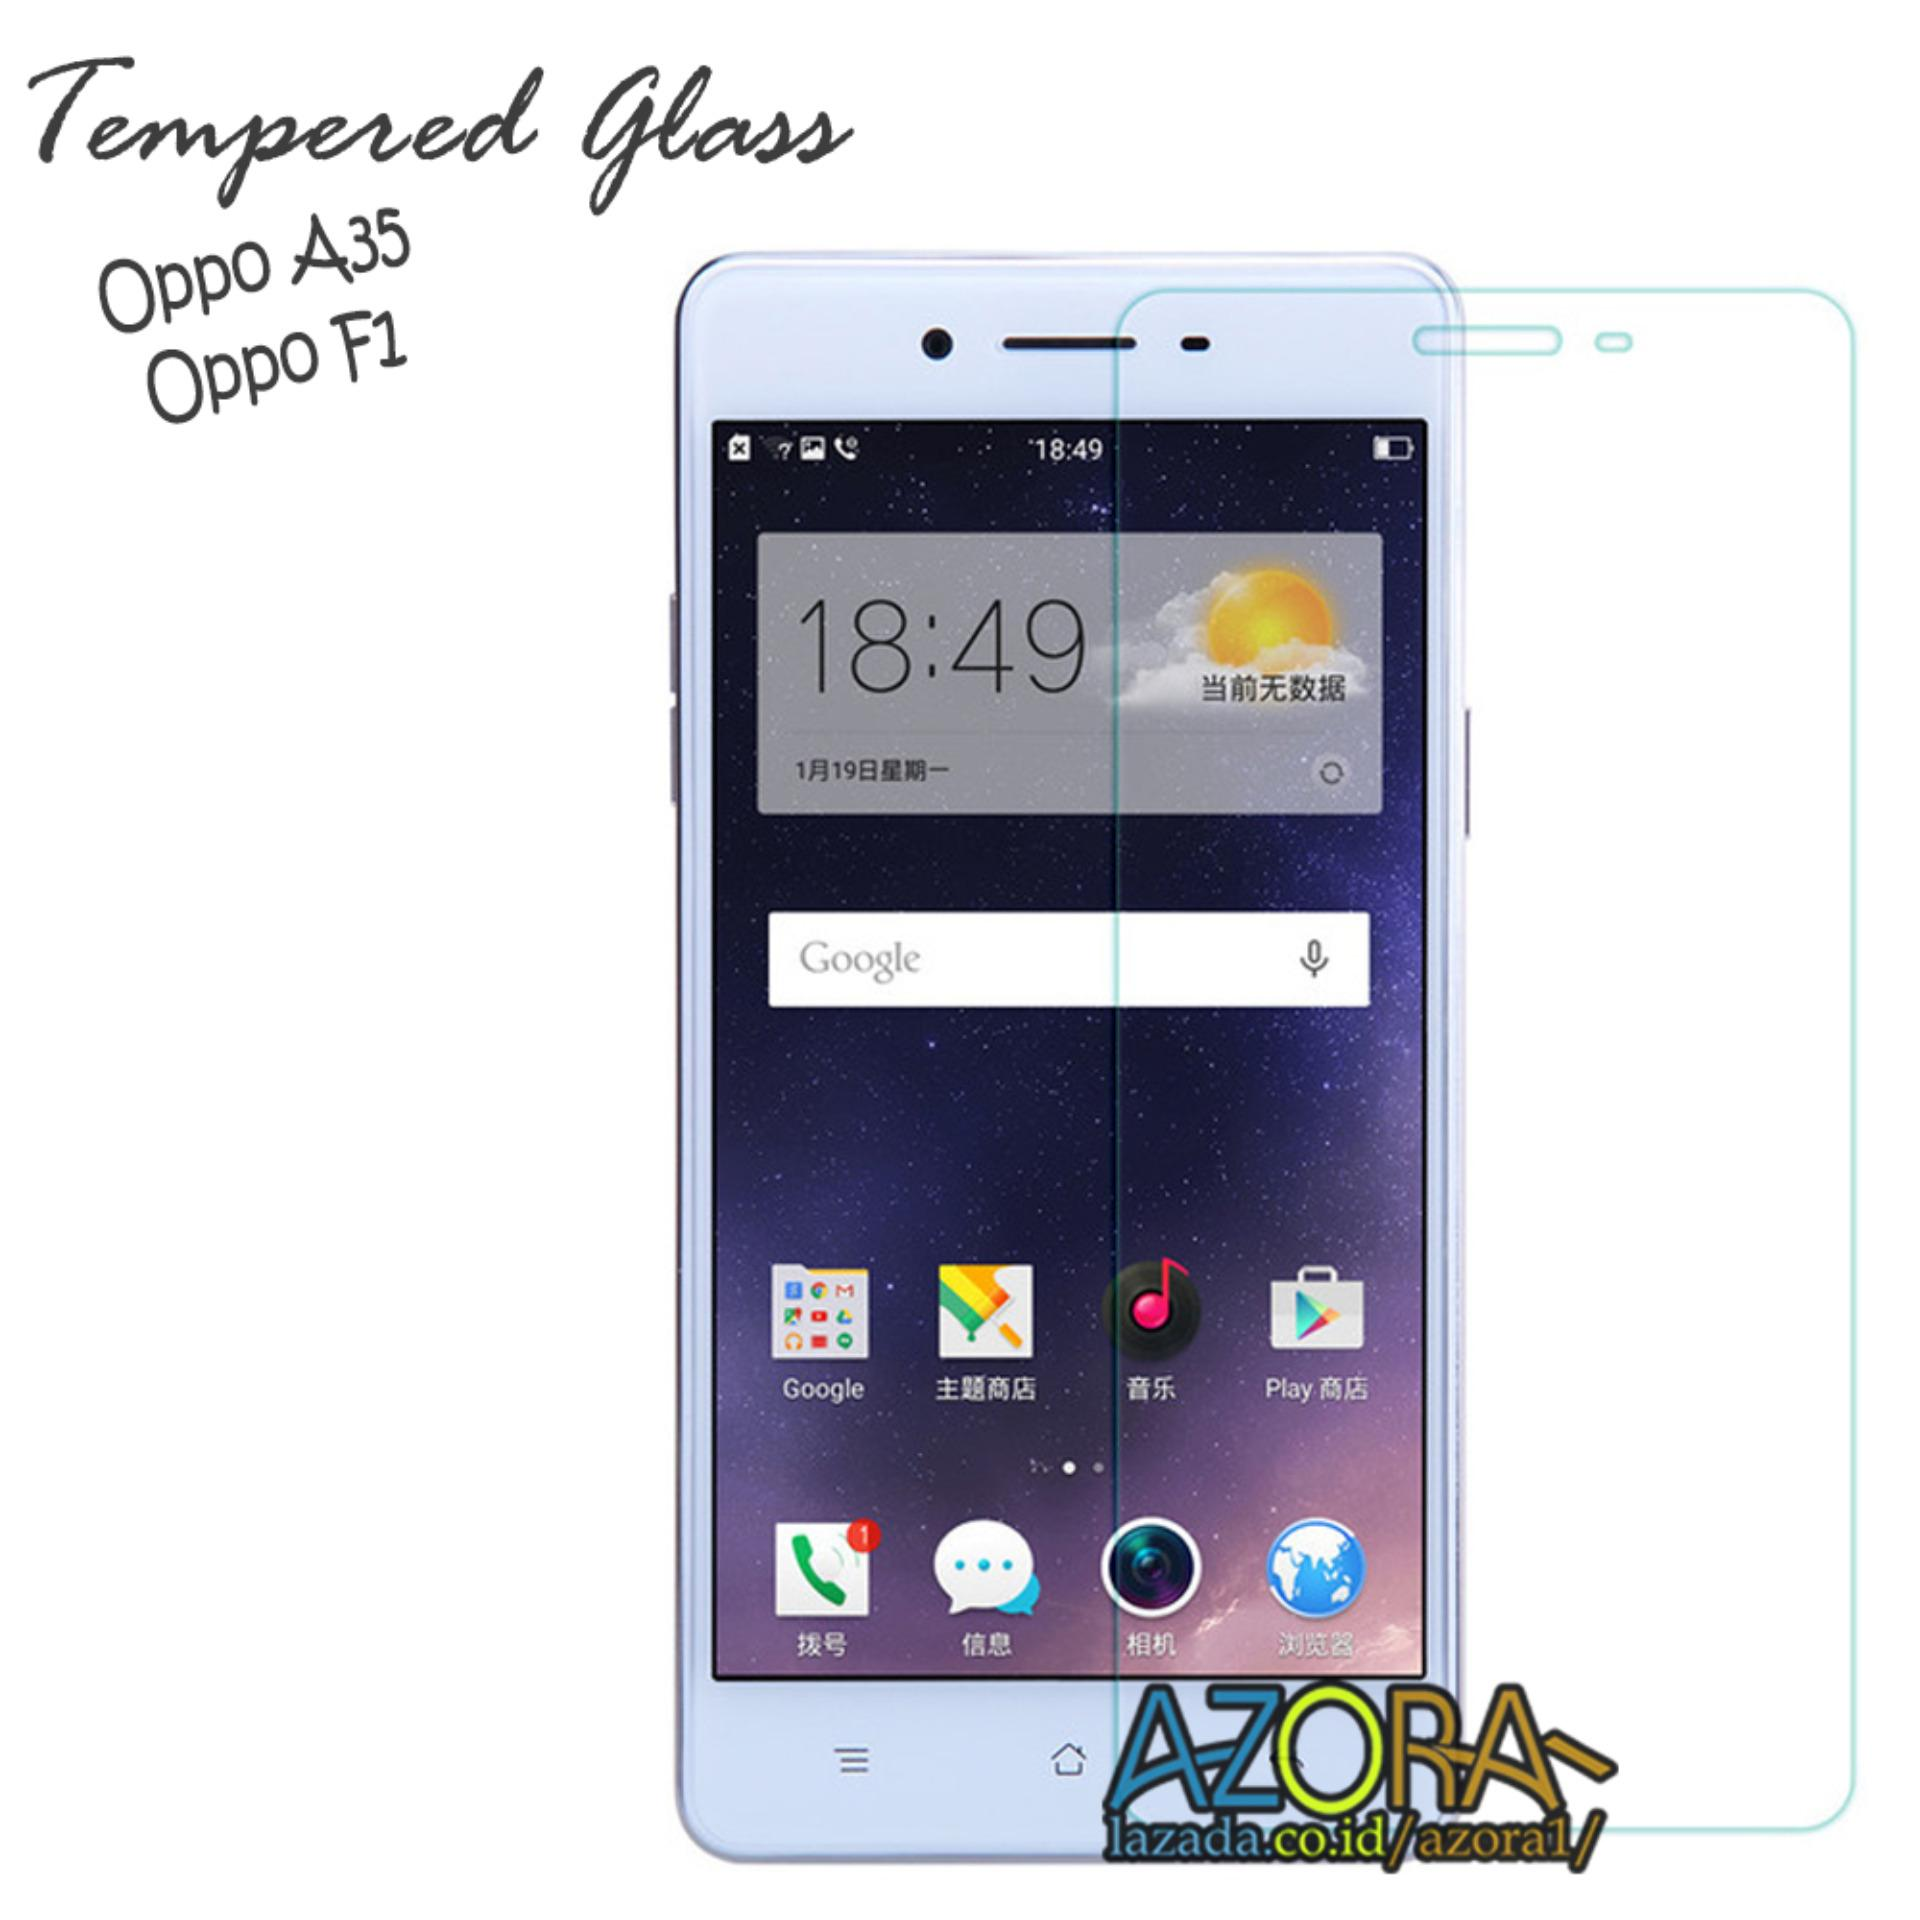 Tempered Glass Oppo F1 / A35 Screen Protector Pelindung Layar Kaca Anti Gores - Bening